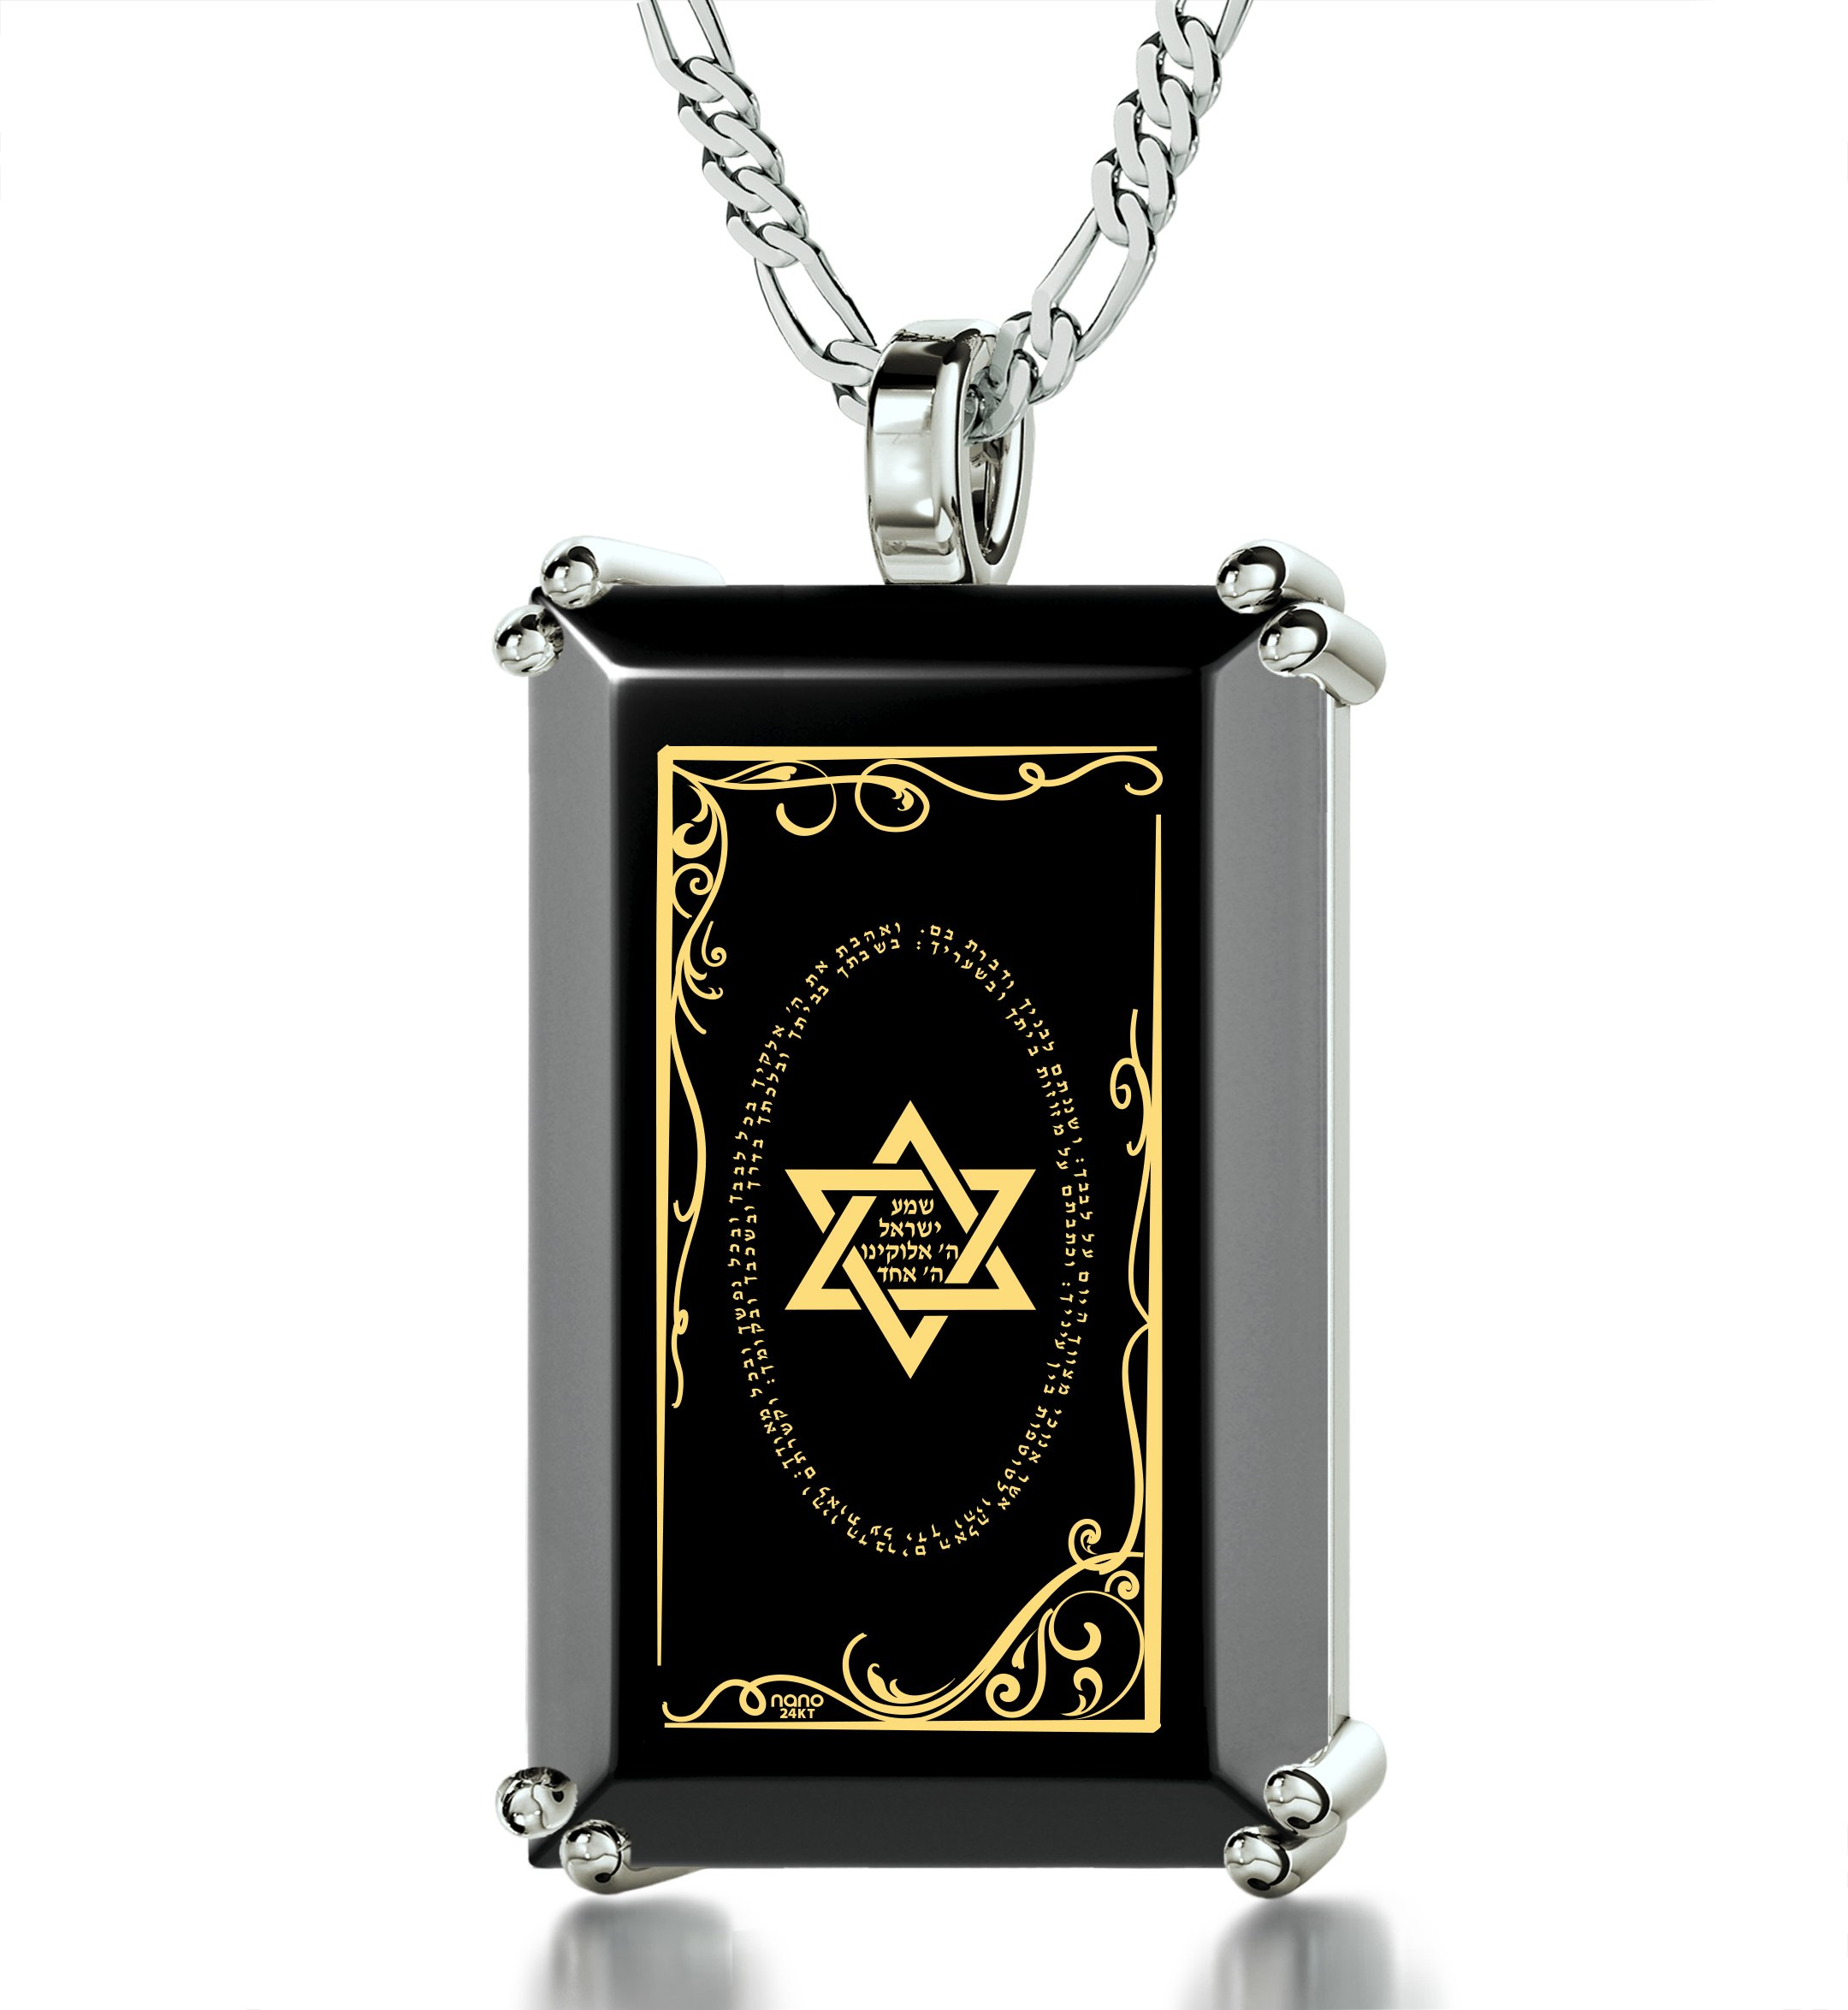 Star of David Necklace for Men - Shema Israel Pendant in 925 Silver - Hebrew Inscribed in 24K on Onyx Stone by Nano Jewelry